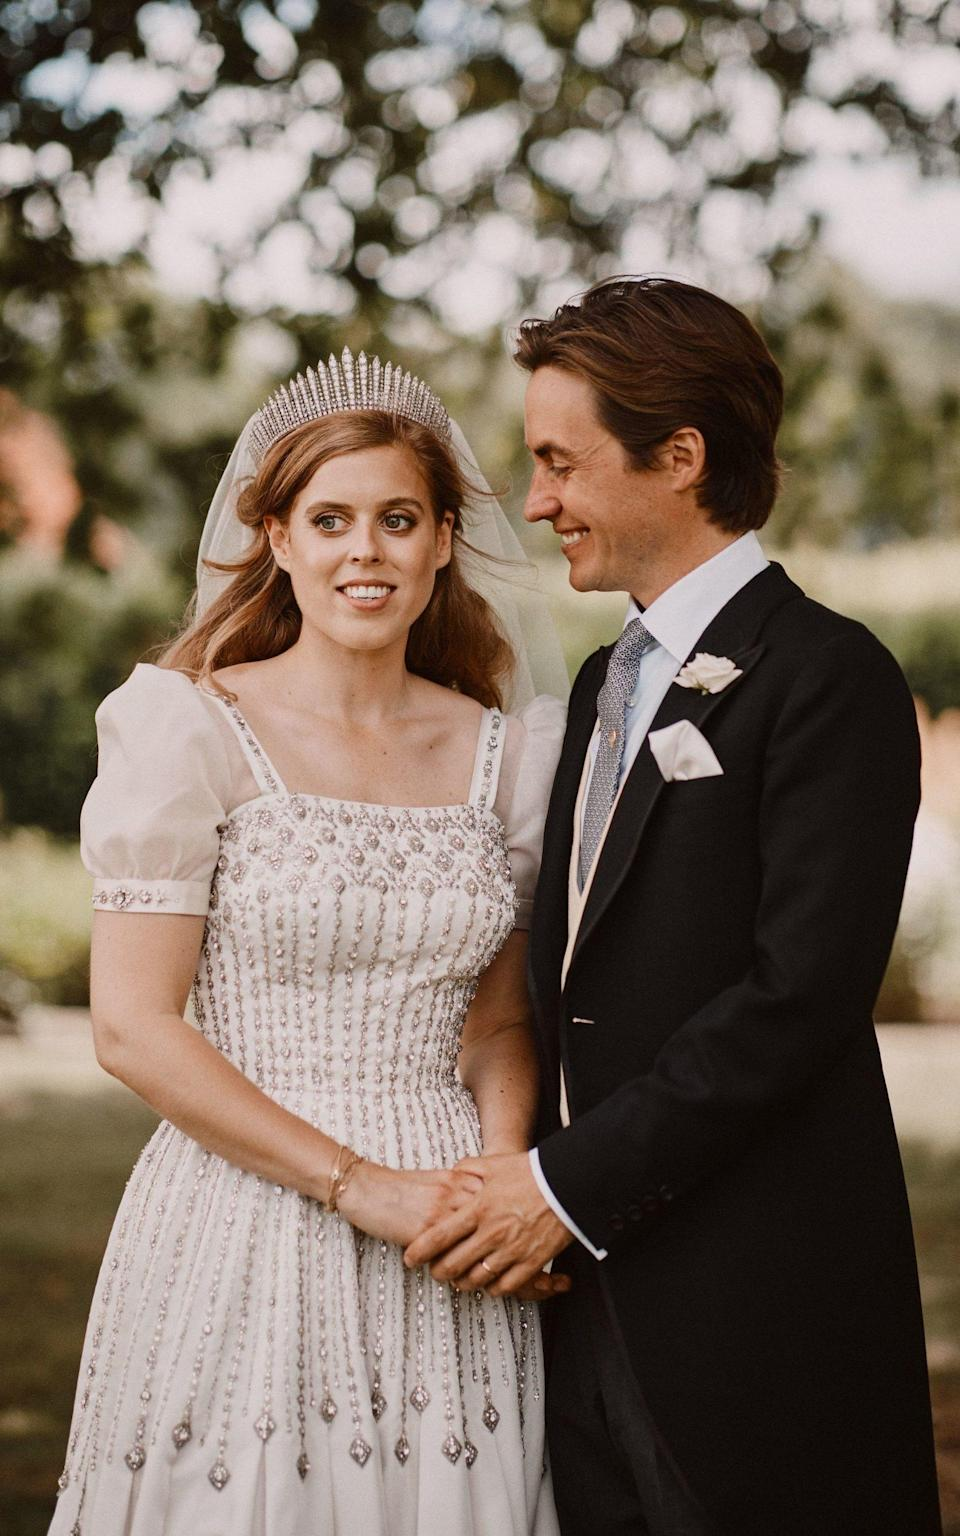 Princess Beatrice and Edoardo Mapelli Mozzi in the grounds of the Royal Lodge, after their wedding - Benjamin Wheeler/PA